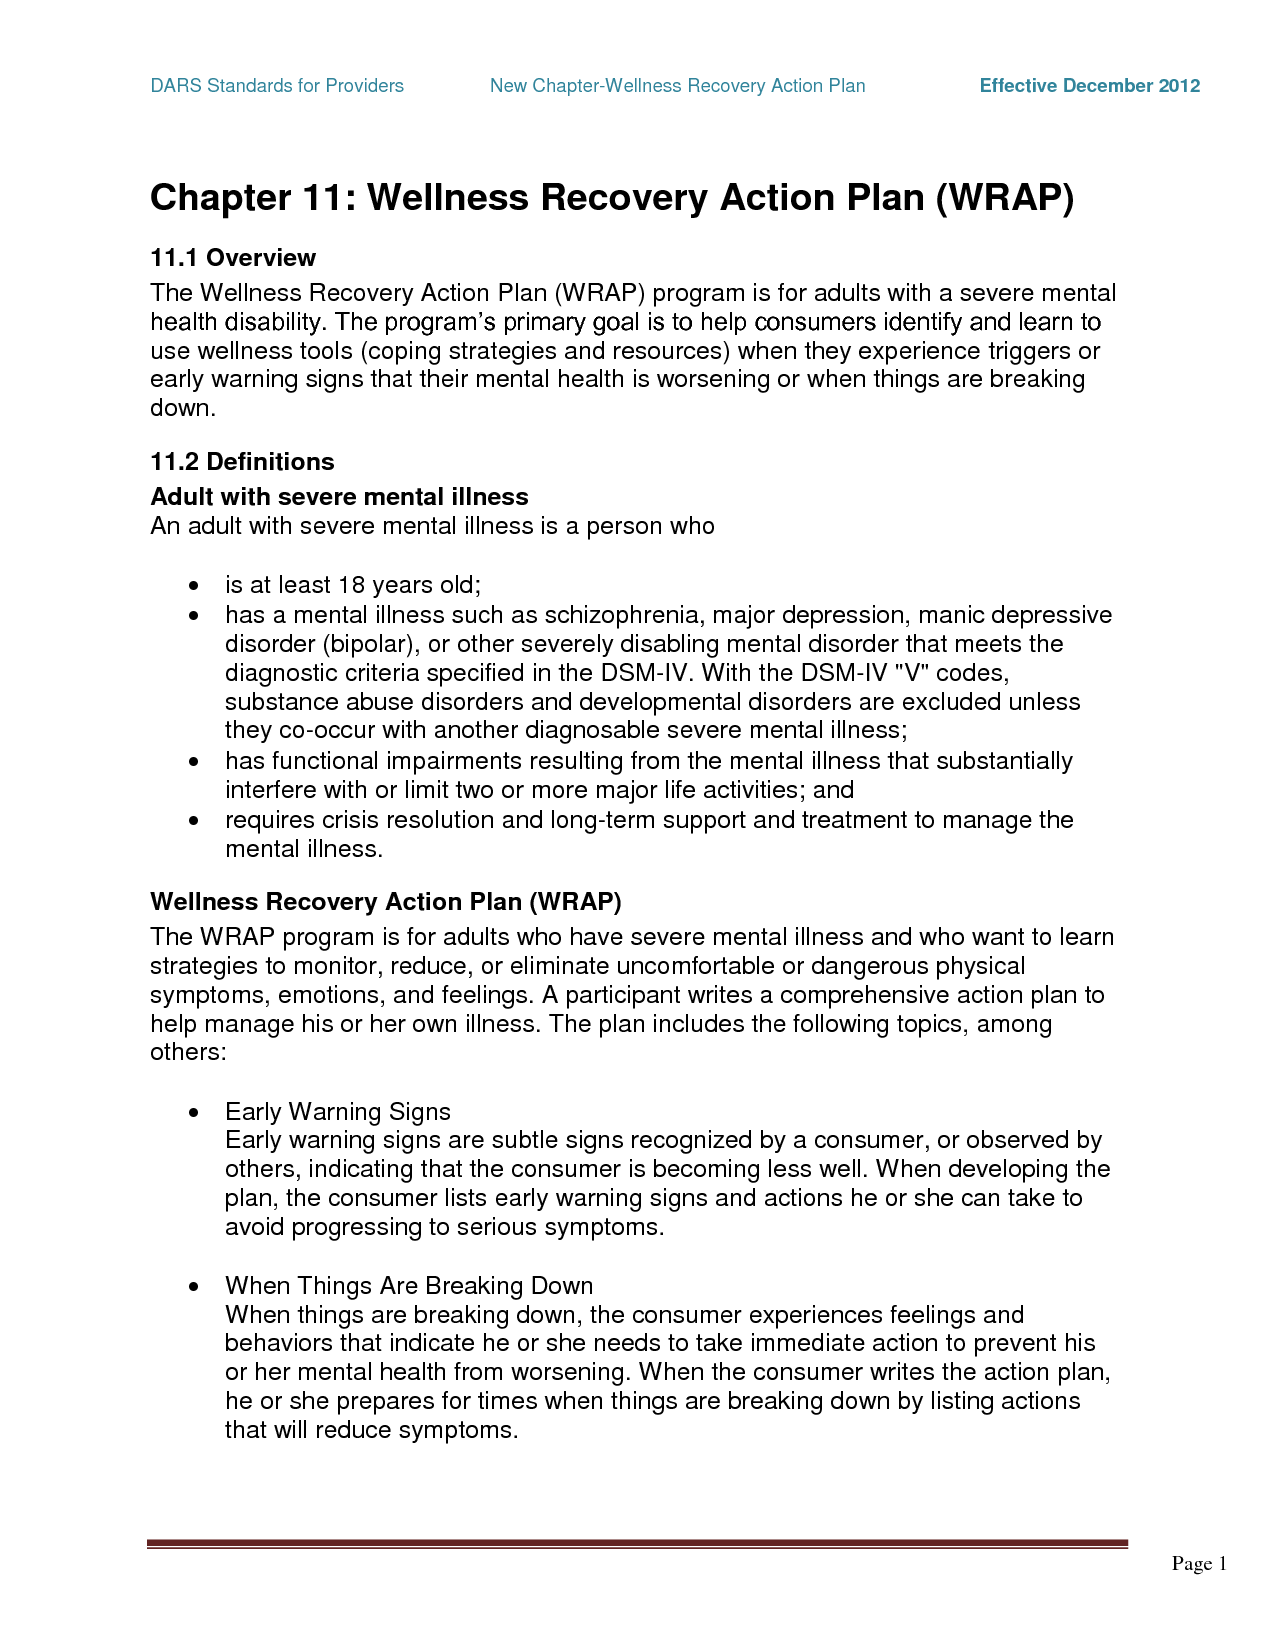 recovery action plan template - wrap mental health chapter 11 wellness recovery action